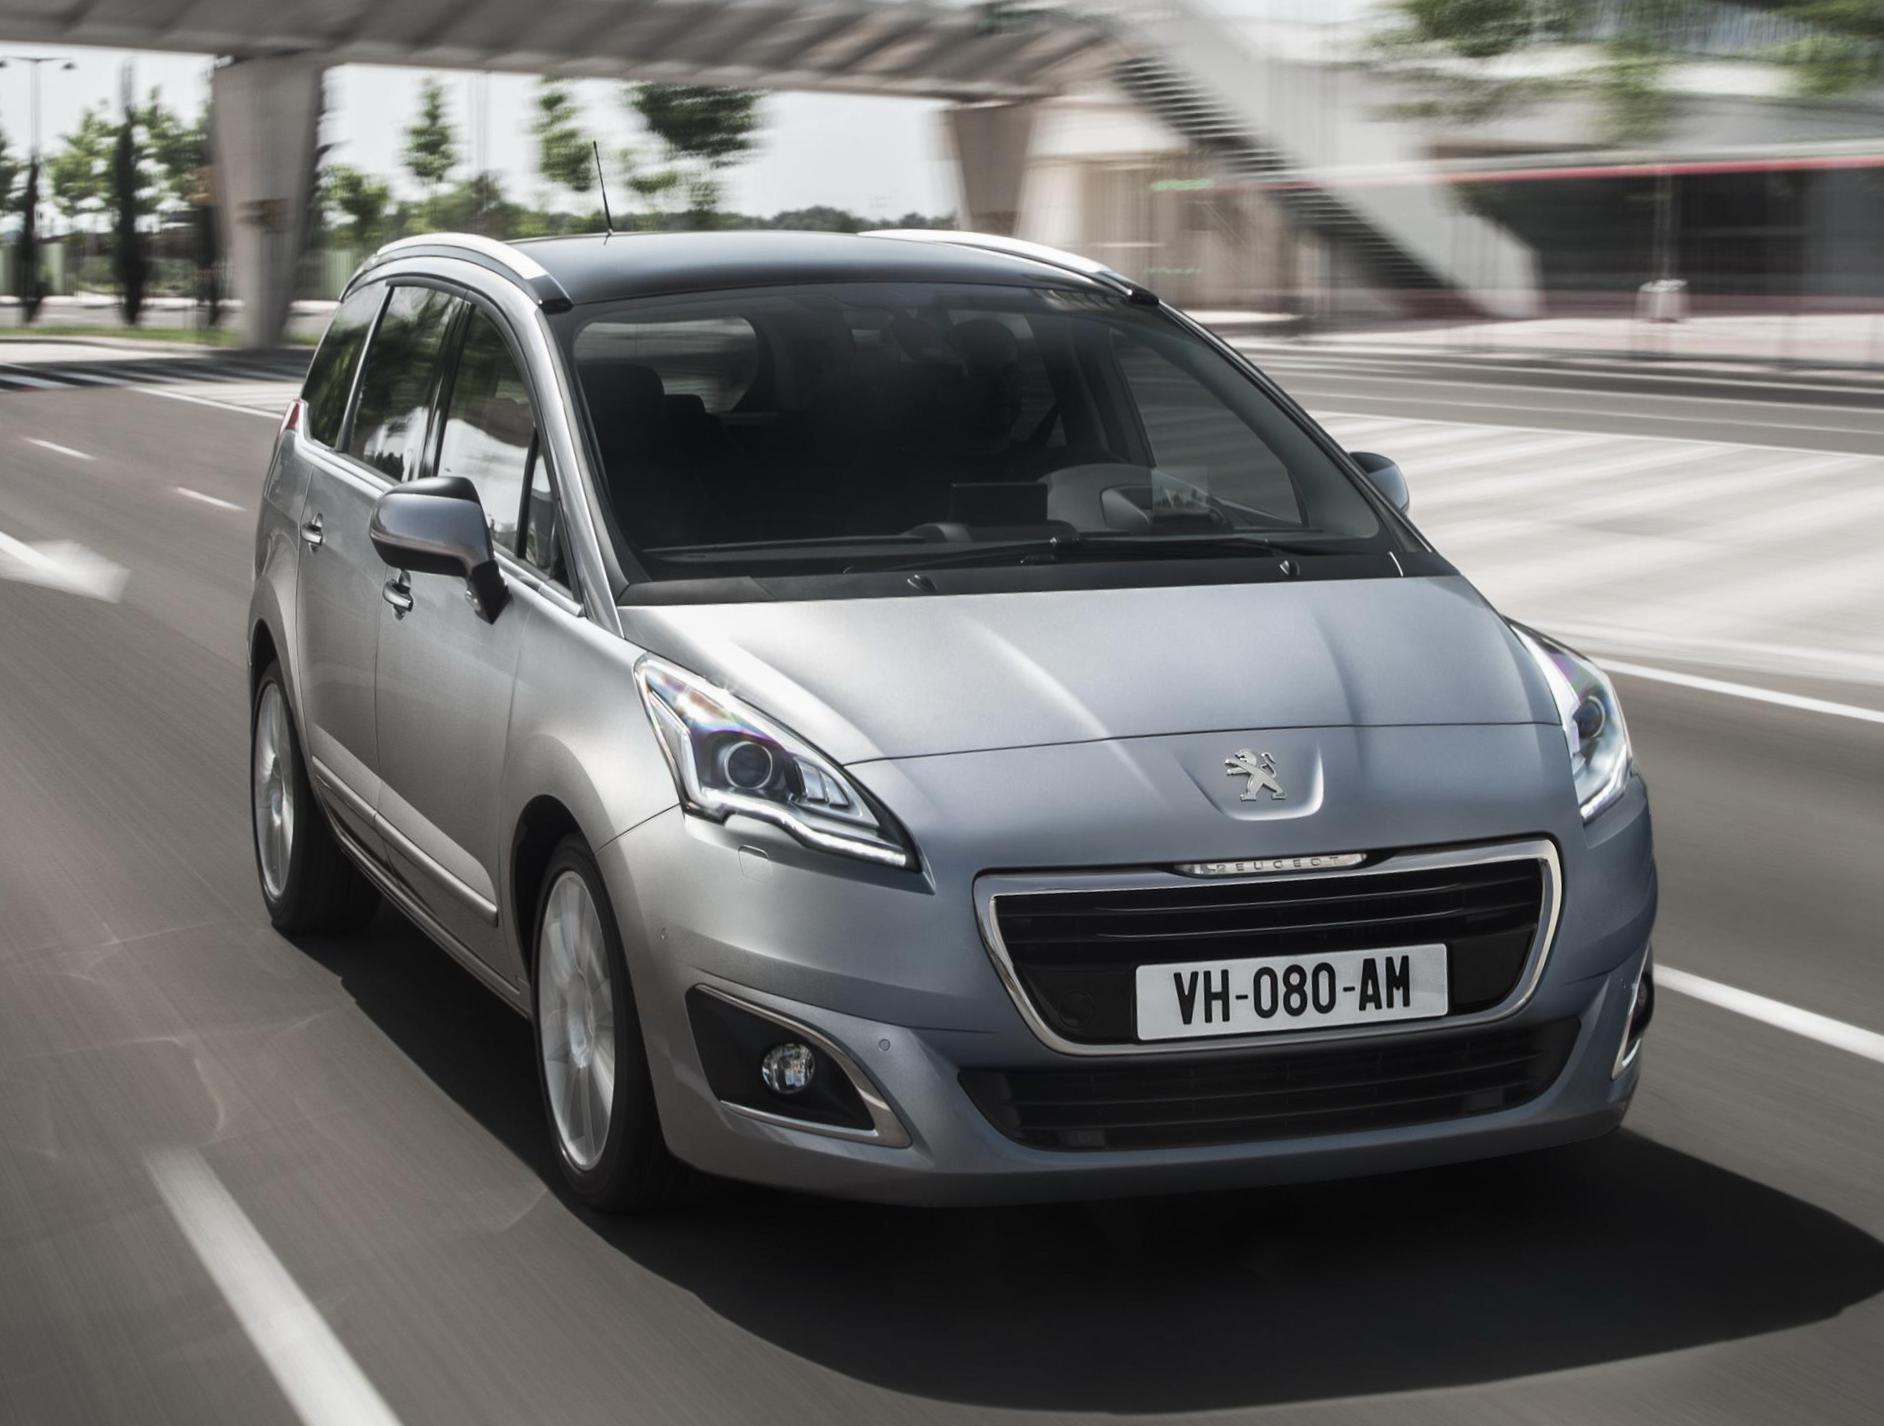 5008 Peugeot for sale 2008